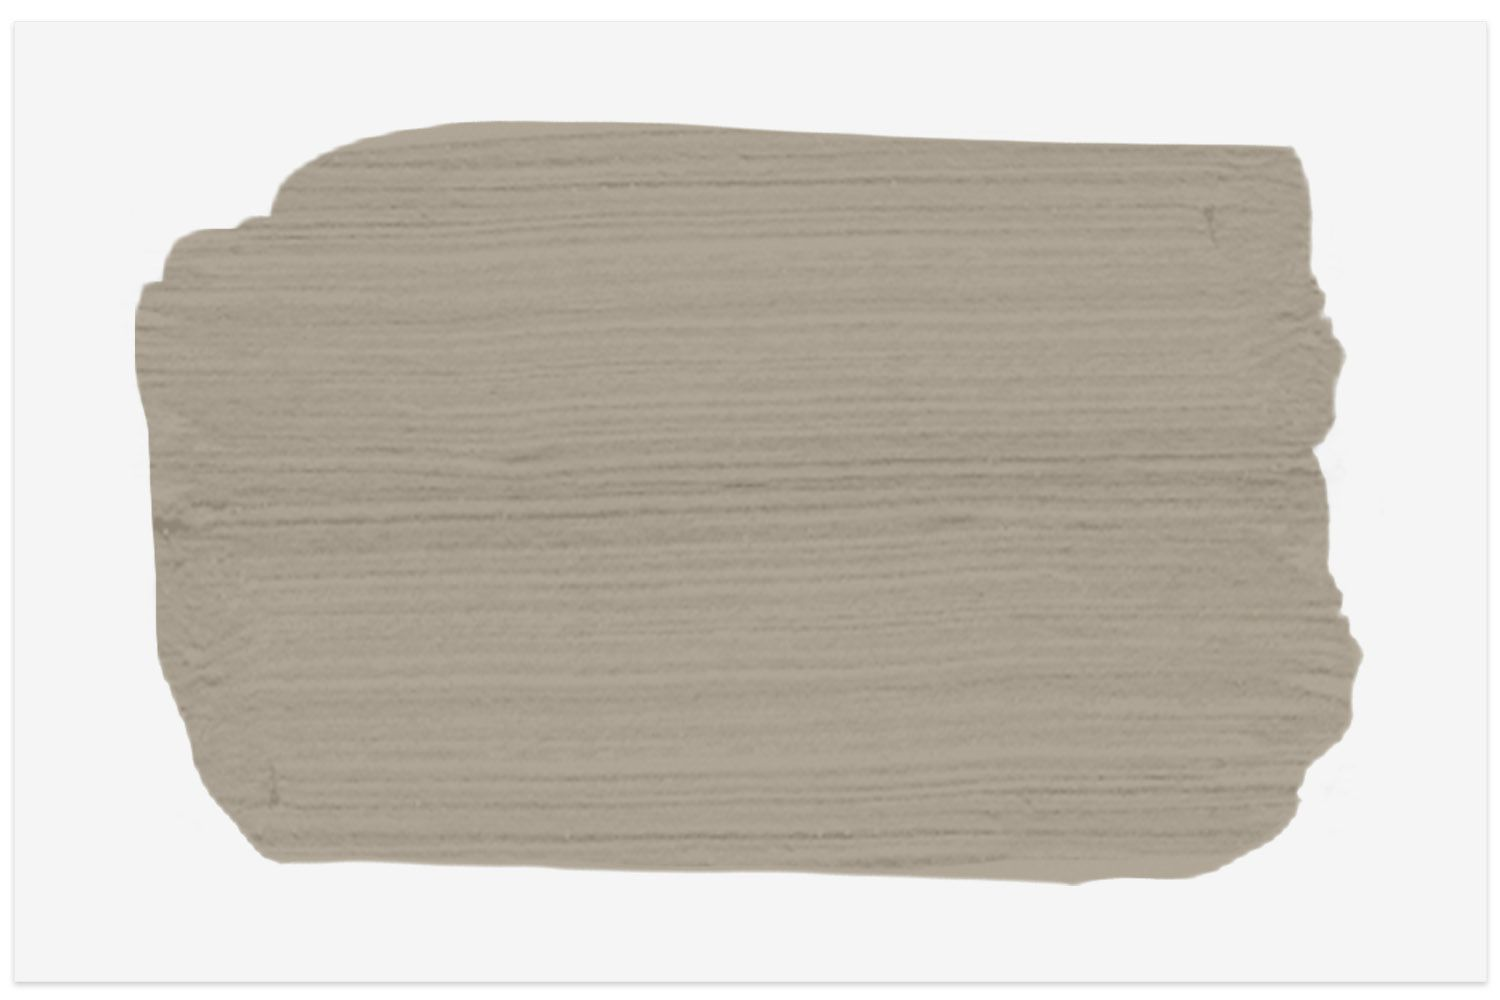 Gray Area paint swatch from Sherwin-Williams